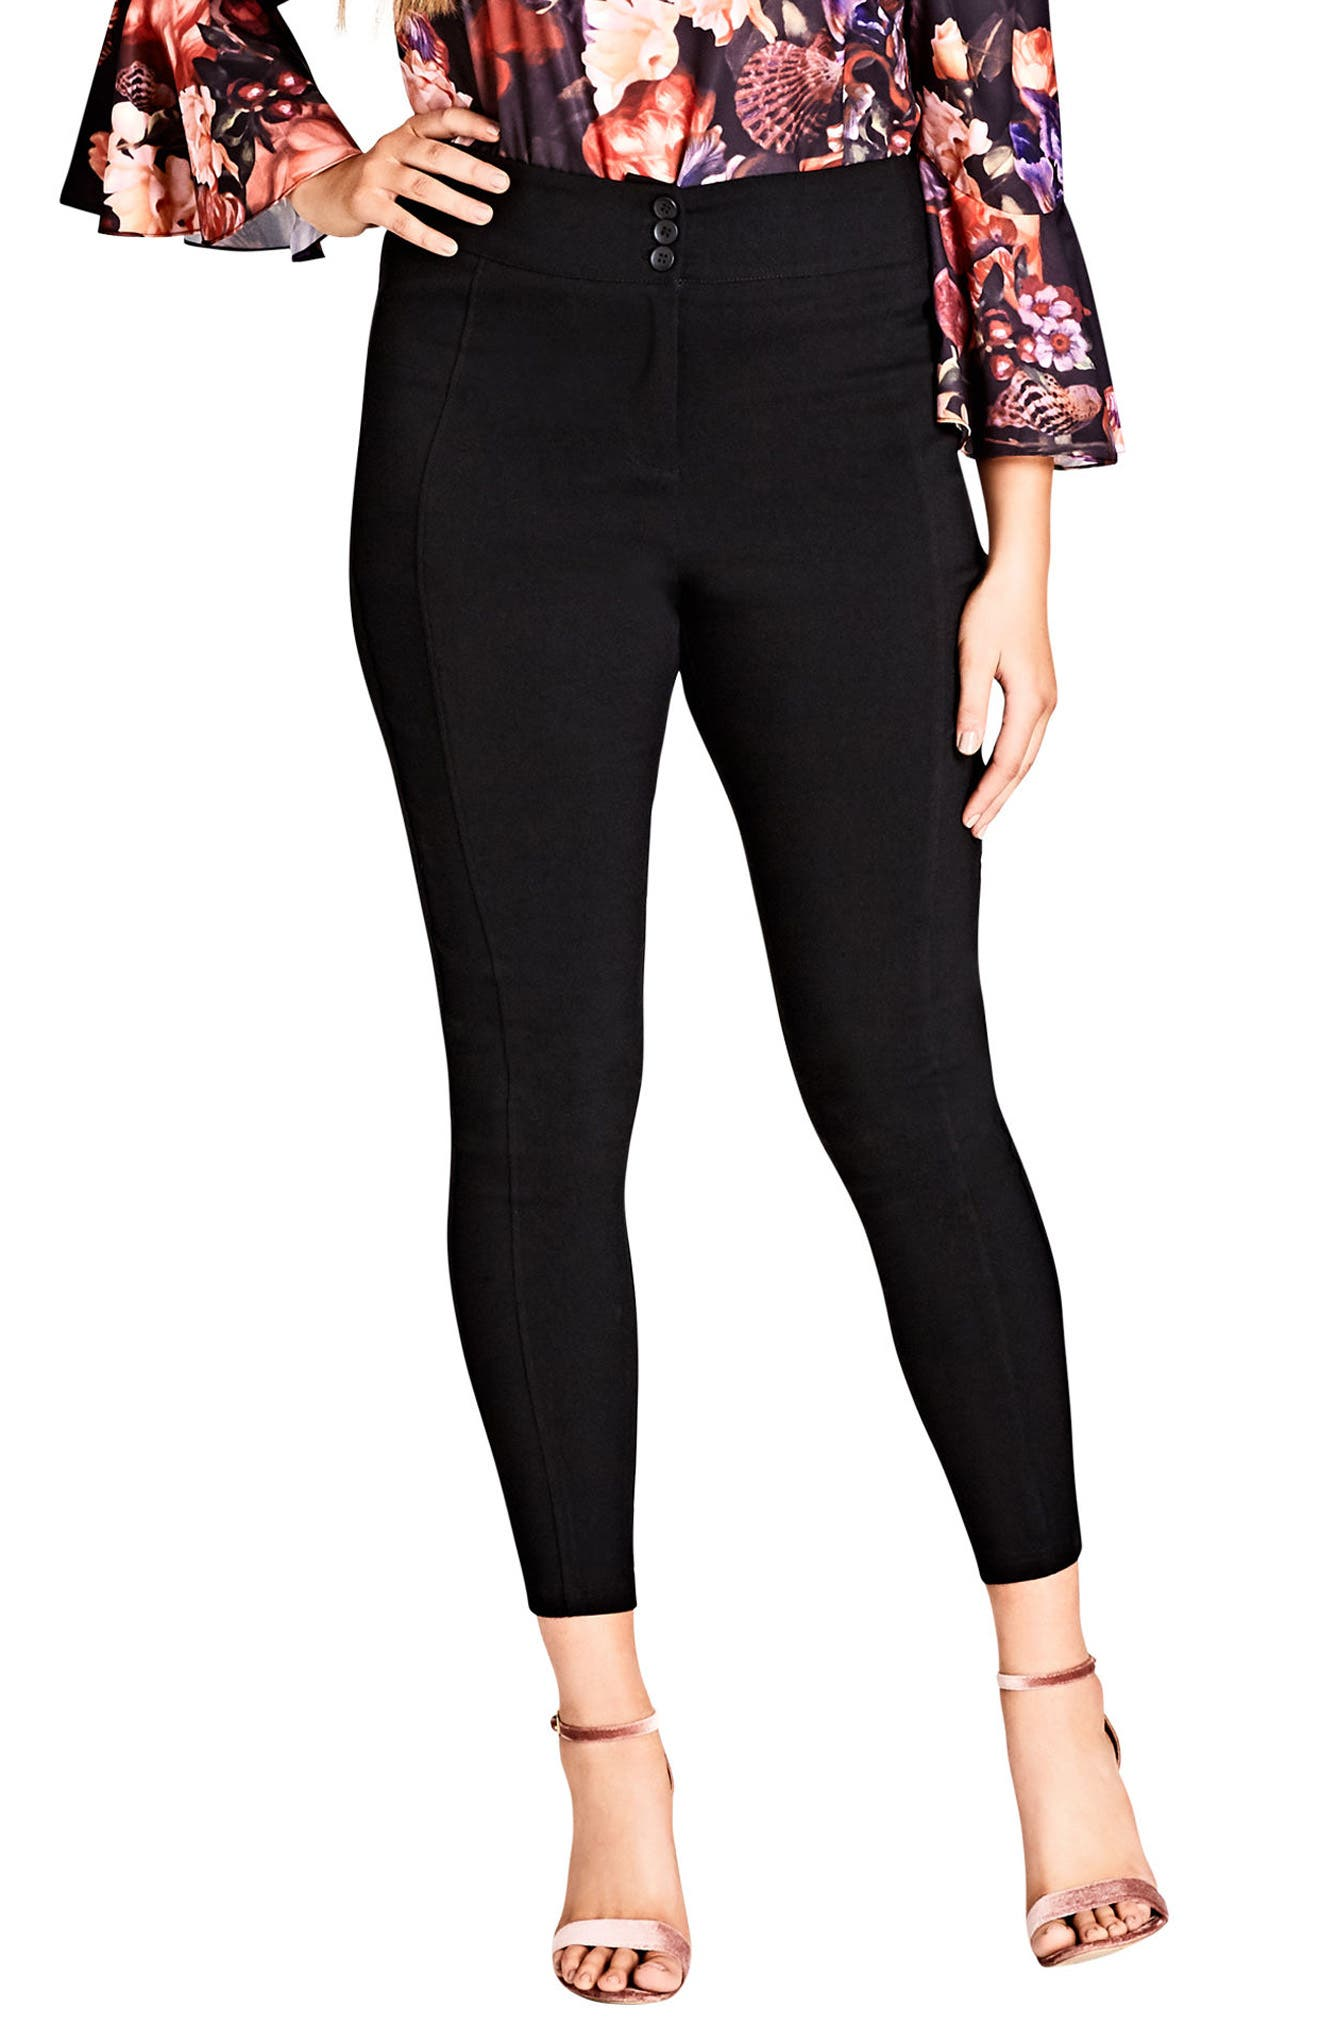 Alternate Image 1 Selected - City Chic Bengaline Seam Pants (Plus Size)